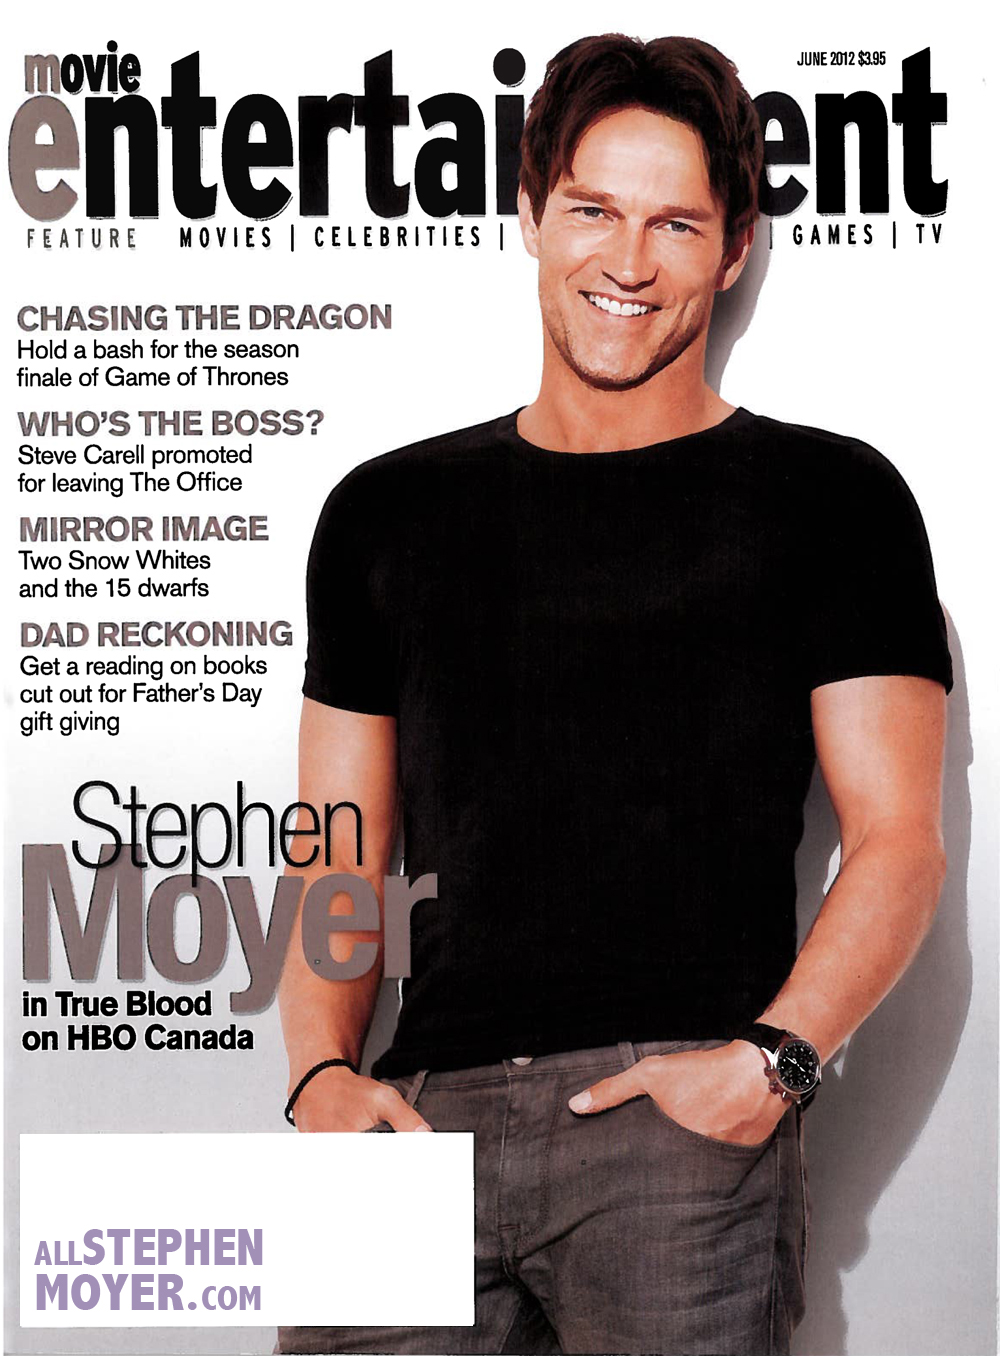 stephen moyer covers s movie entertainment magazine so here s another cover that we have added to our stephen moyer on the cover section here at allstephenmoyer com click on the images to see a larger